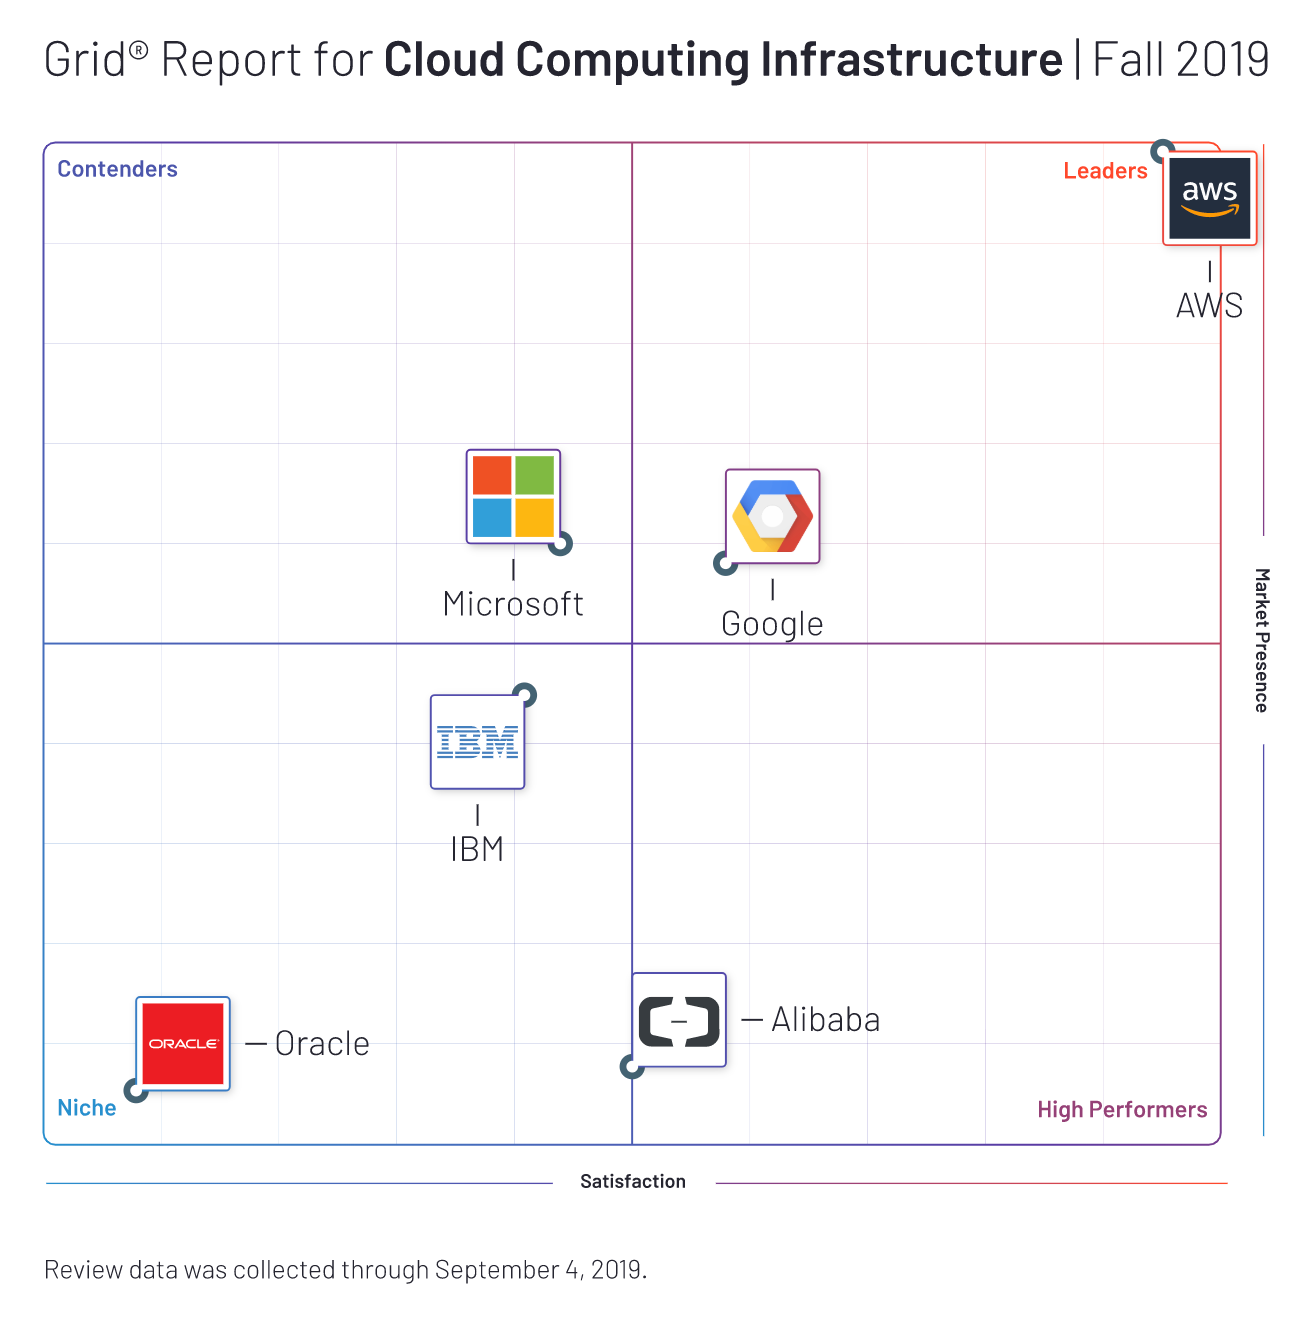 cloud-computing-infrastructure-fall-2019